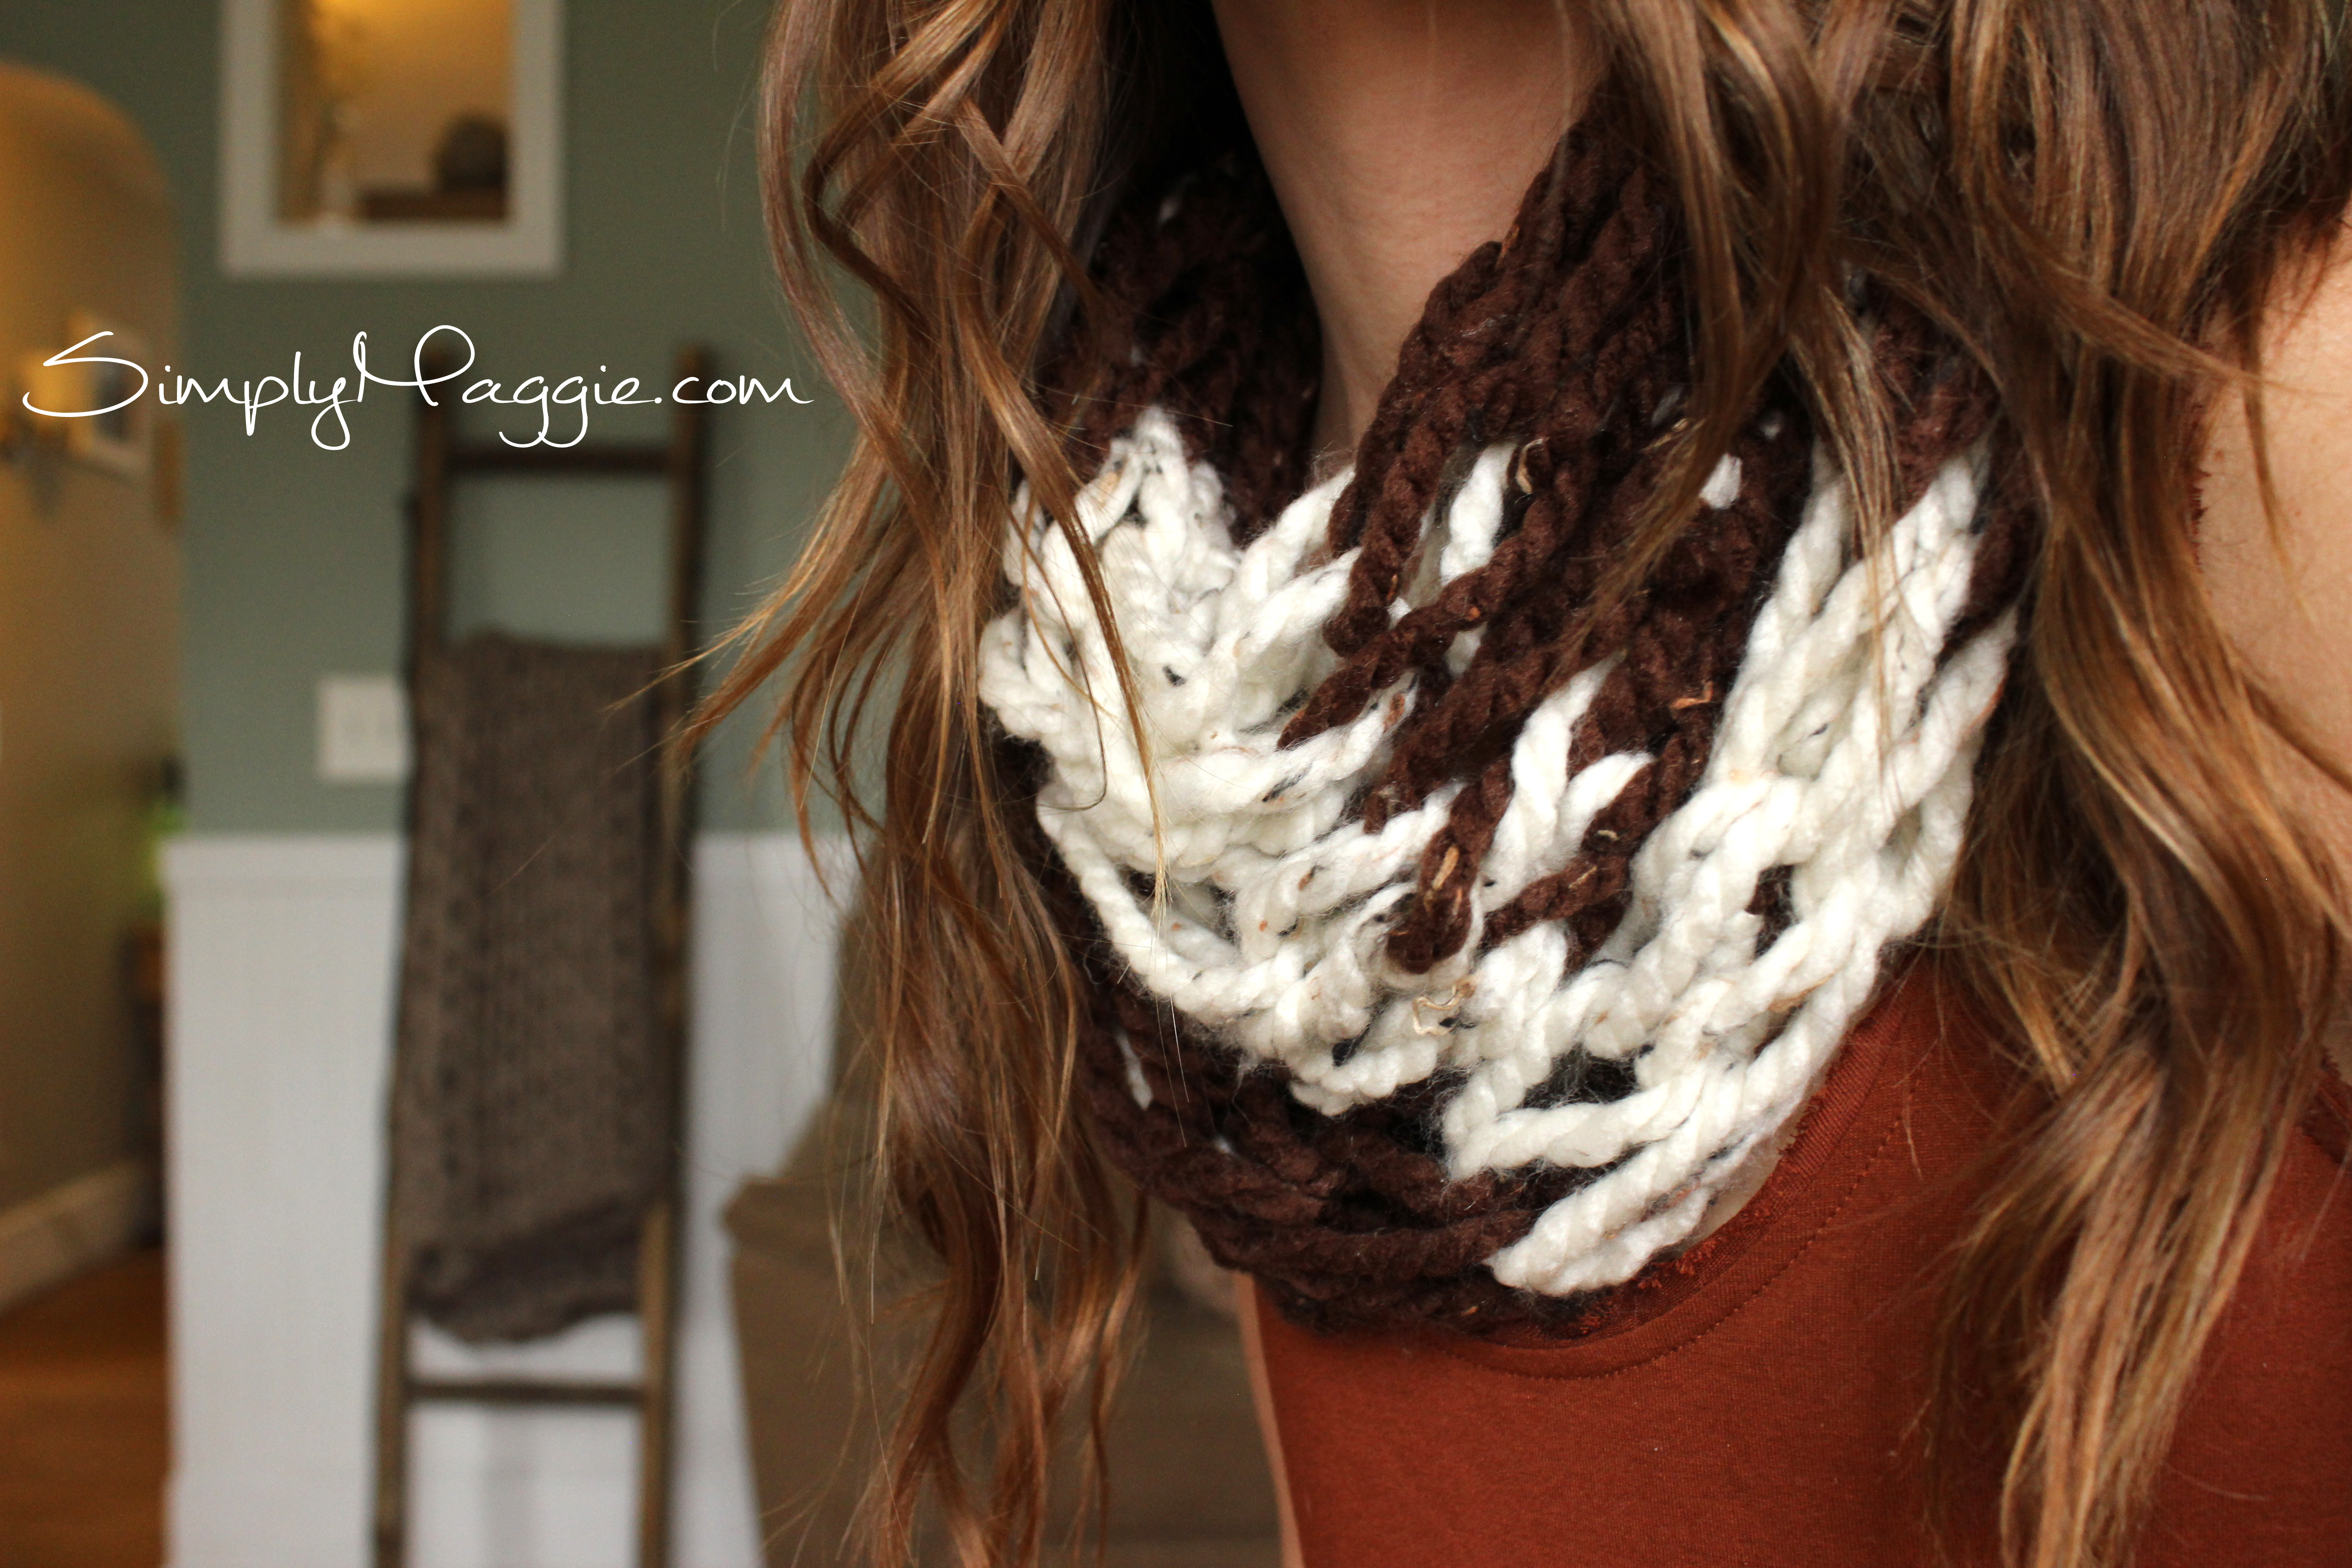 Striped Infinity Scarf Knitting Pattern : Knit Egg Collecting Apron SimplyMaggie.com